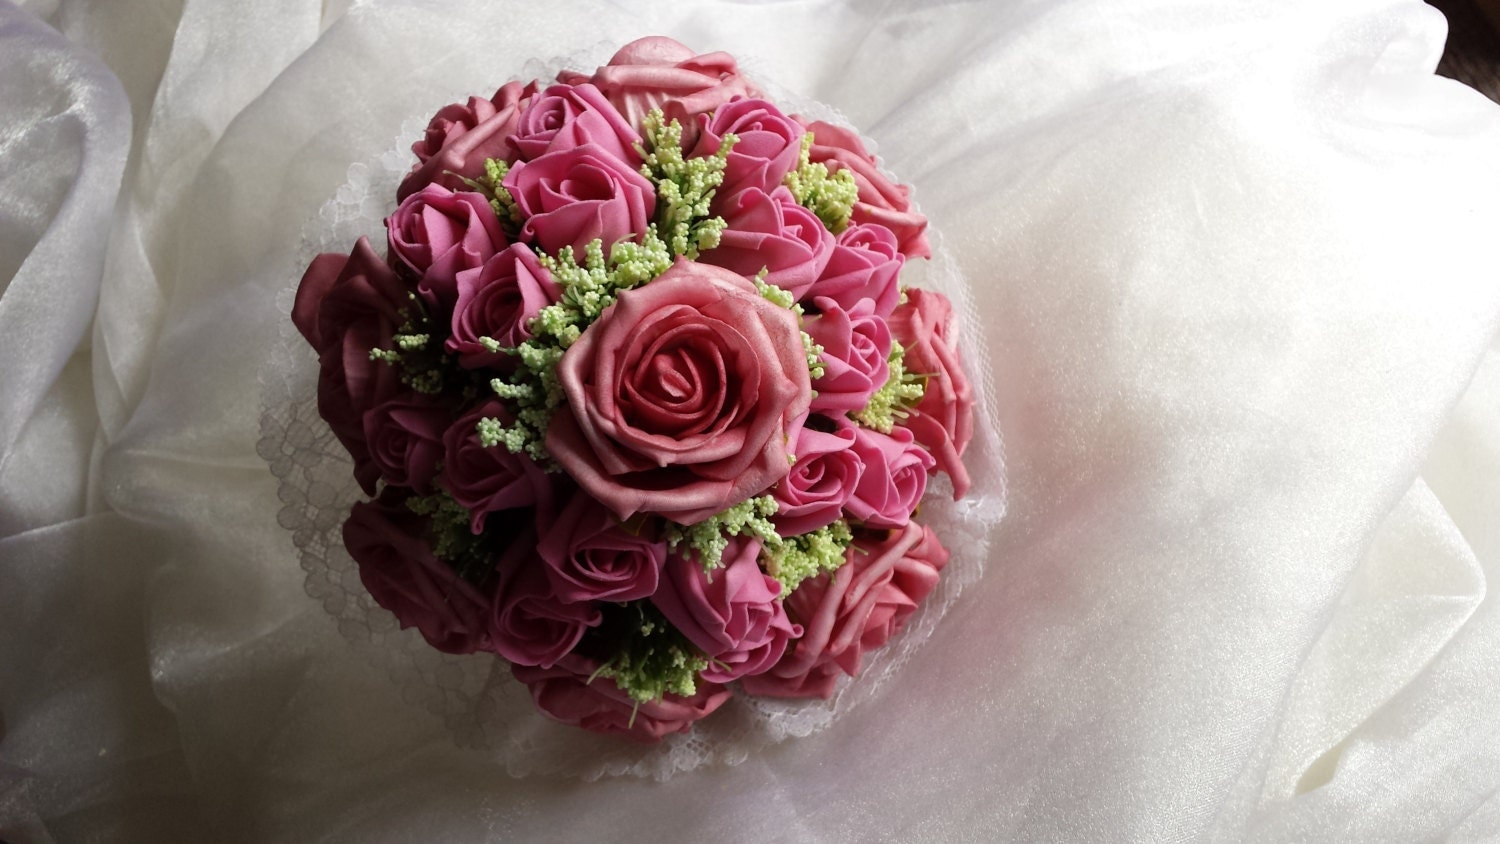 Gorgeous Vintage Inspired Wedding Bouquet in Mixed Pink Roses and Ivory Trachelium with Delicate Lace Collar